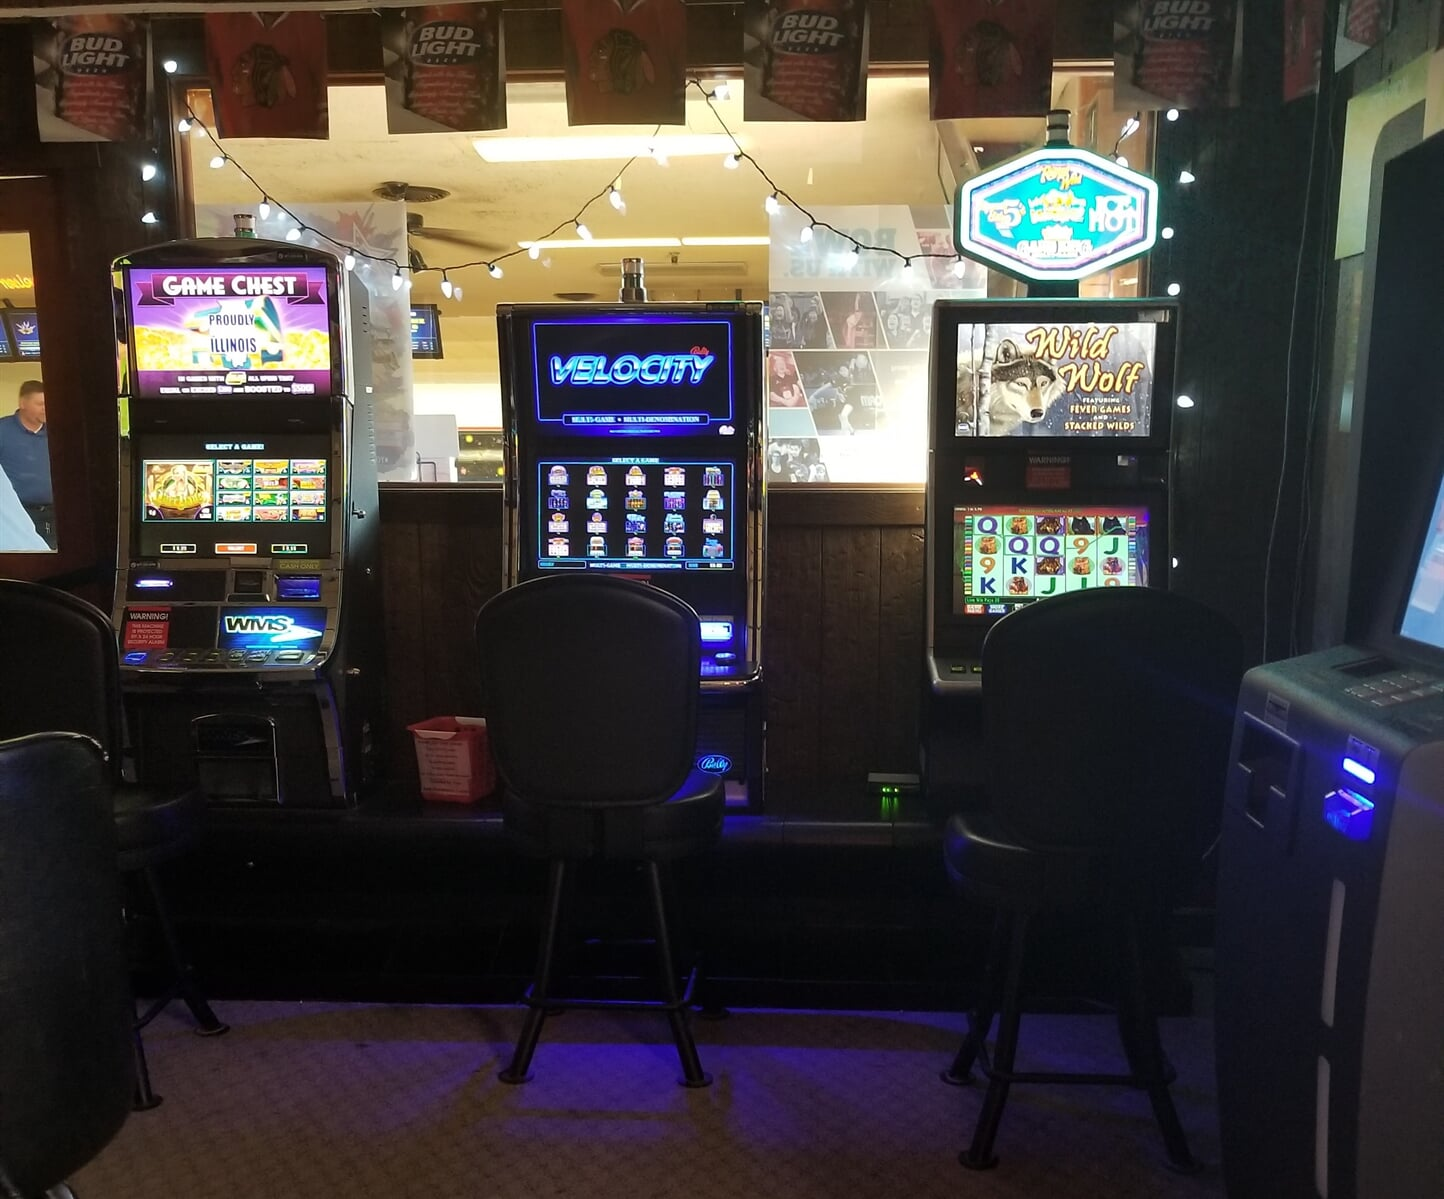 gaming section of three machines